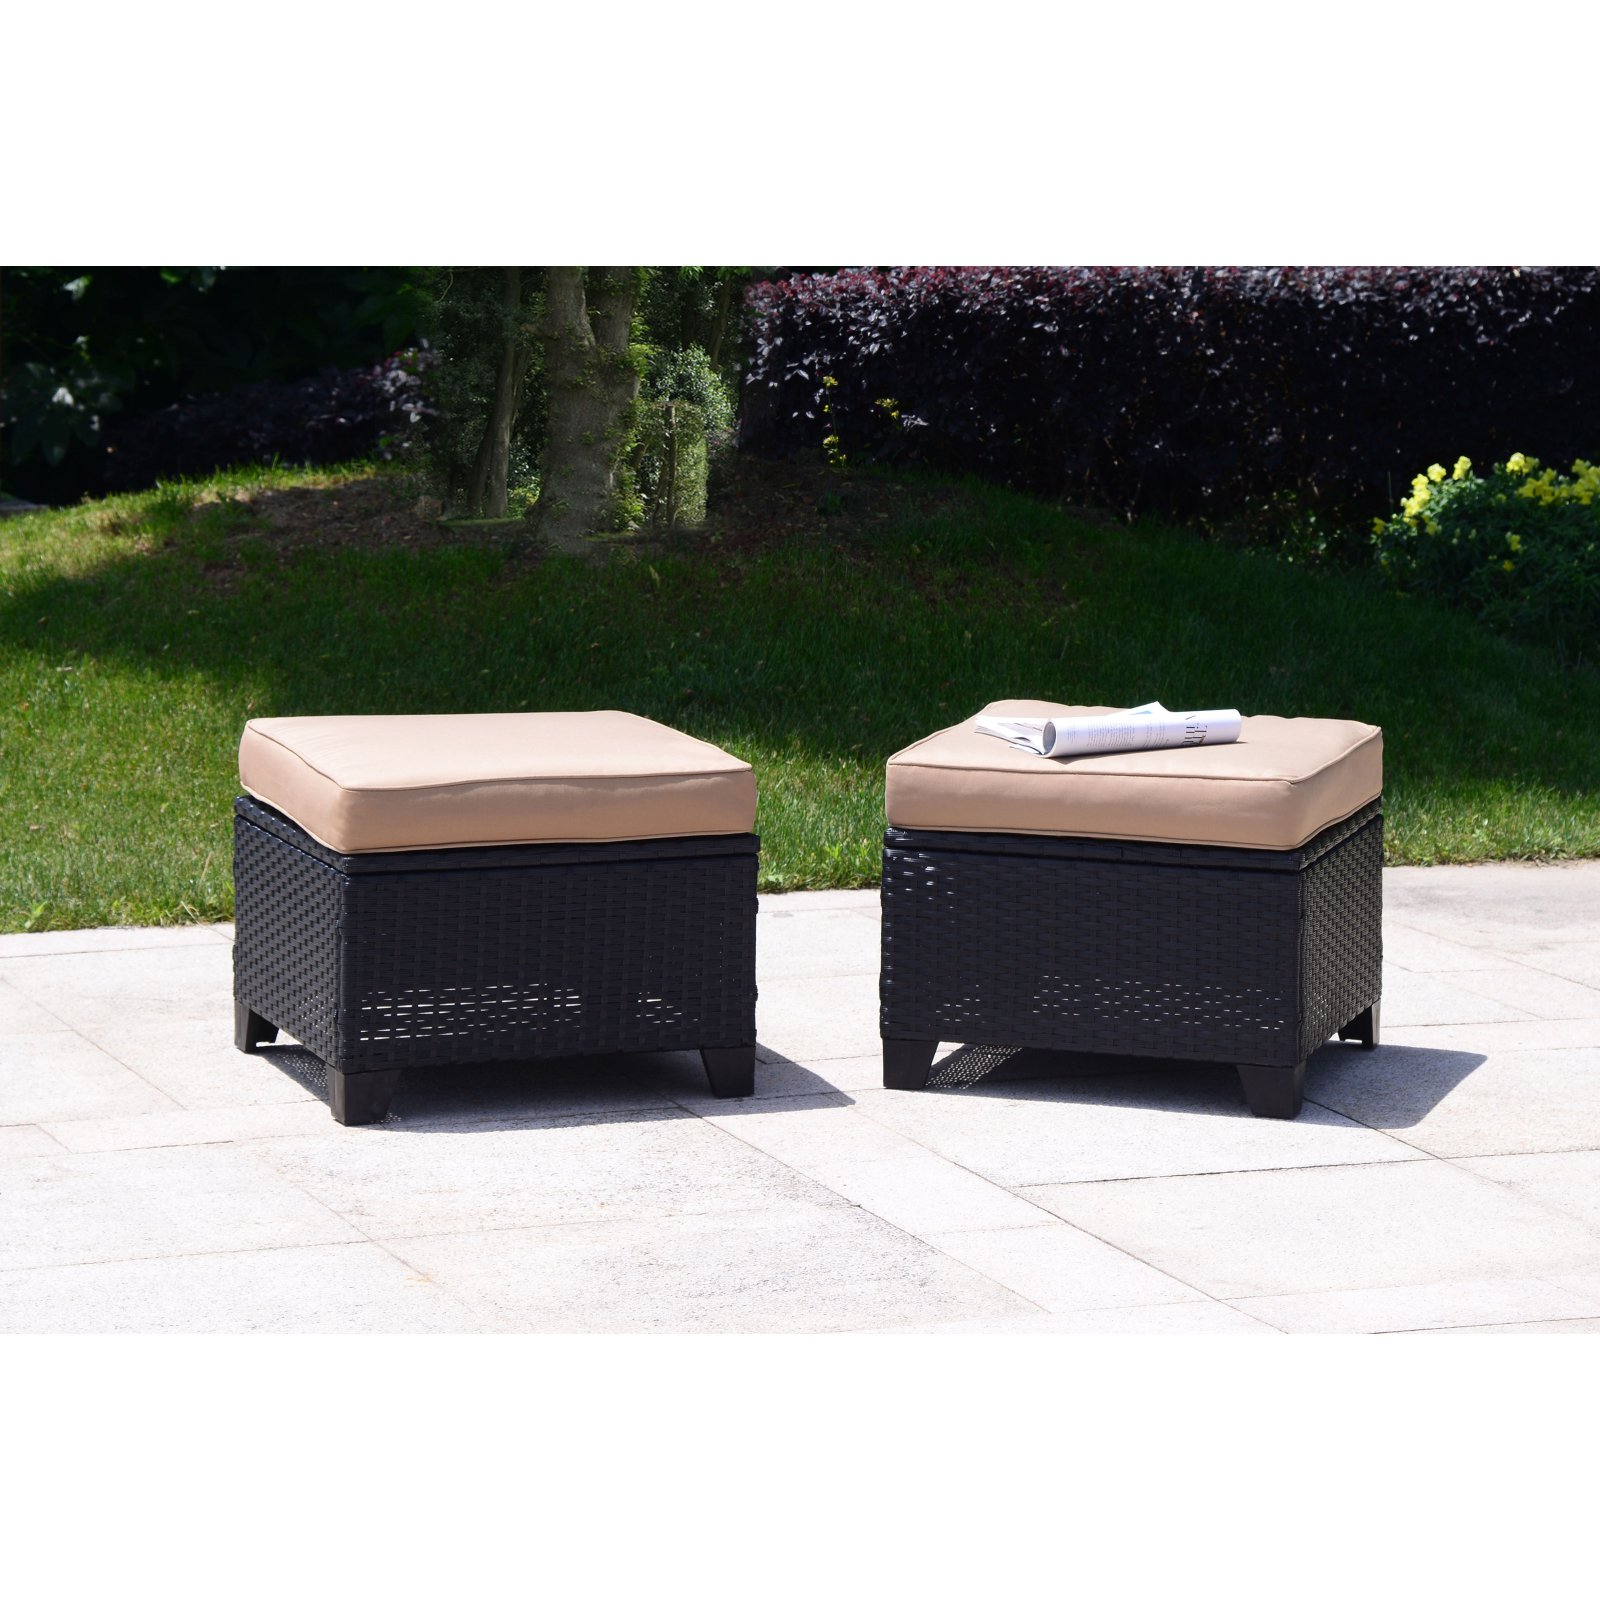 Cloud Mountain Wicker 3 Piece Patio Ottoman Conversation Set